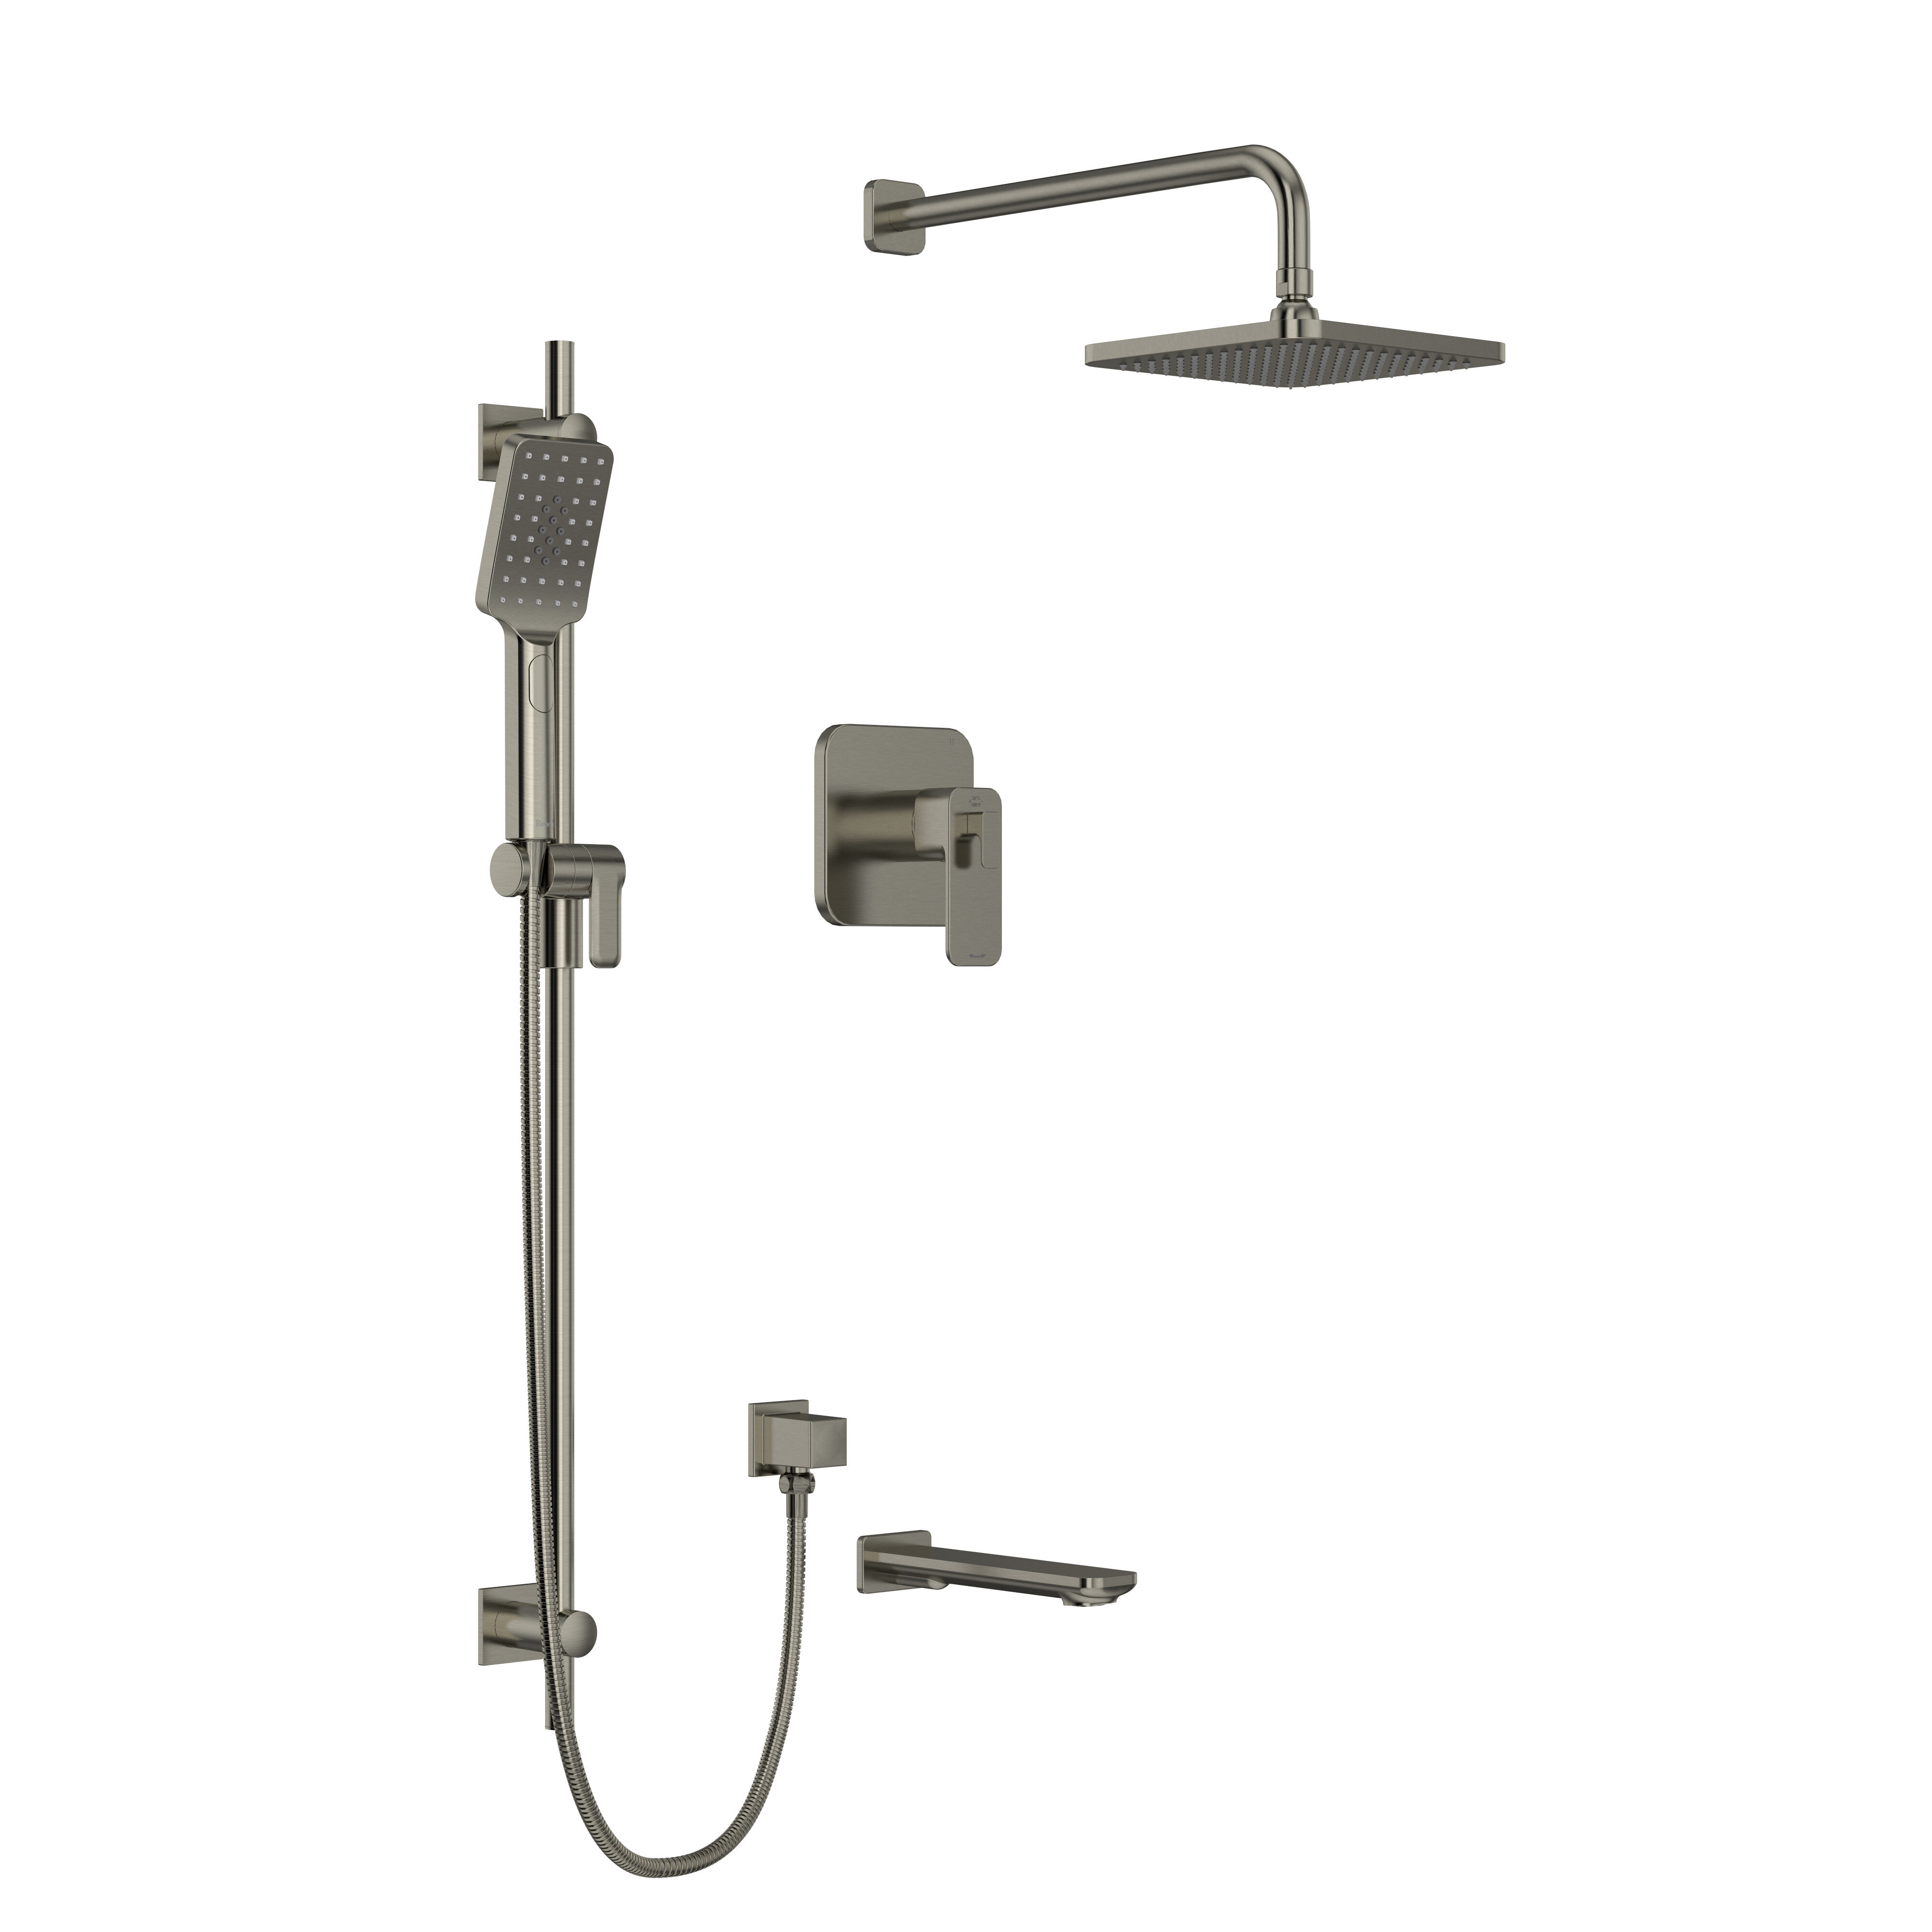 Riobel Equinox 1 2 Pressure Balance Thermostatic Shower System With Up To 3 Functions Featuring Riowise Valve Technology Perigold